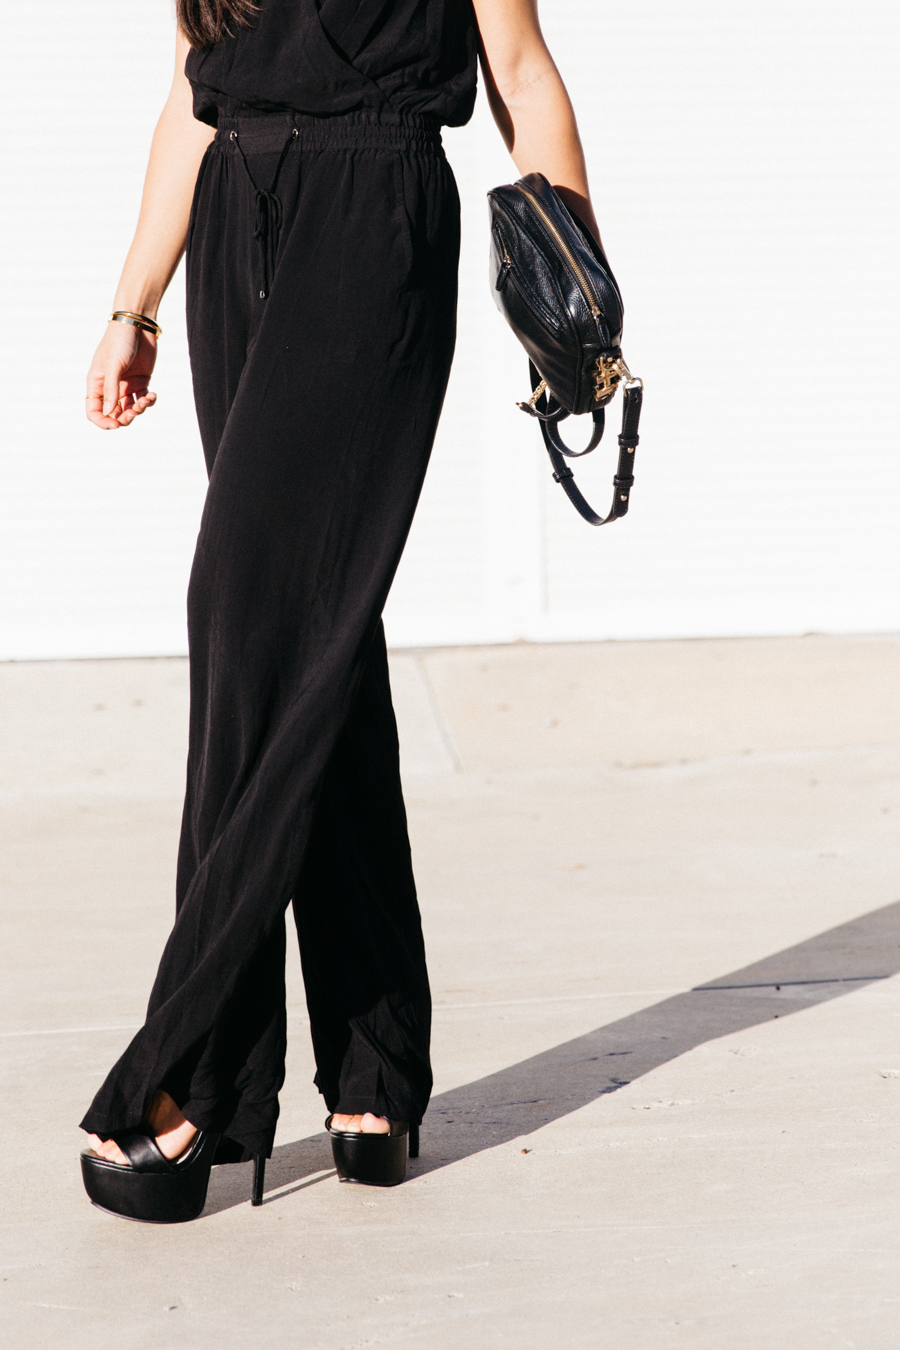 How to wear a jumpsuit.